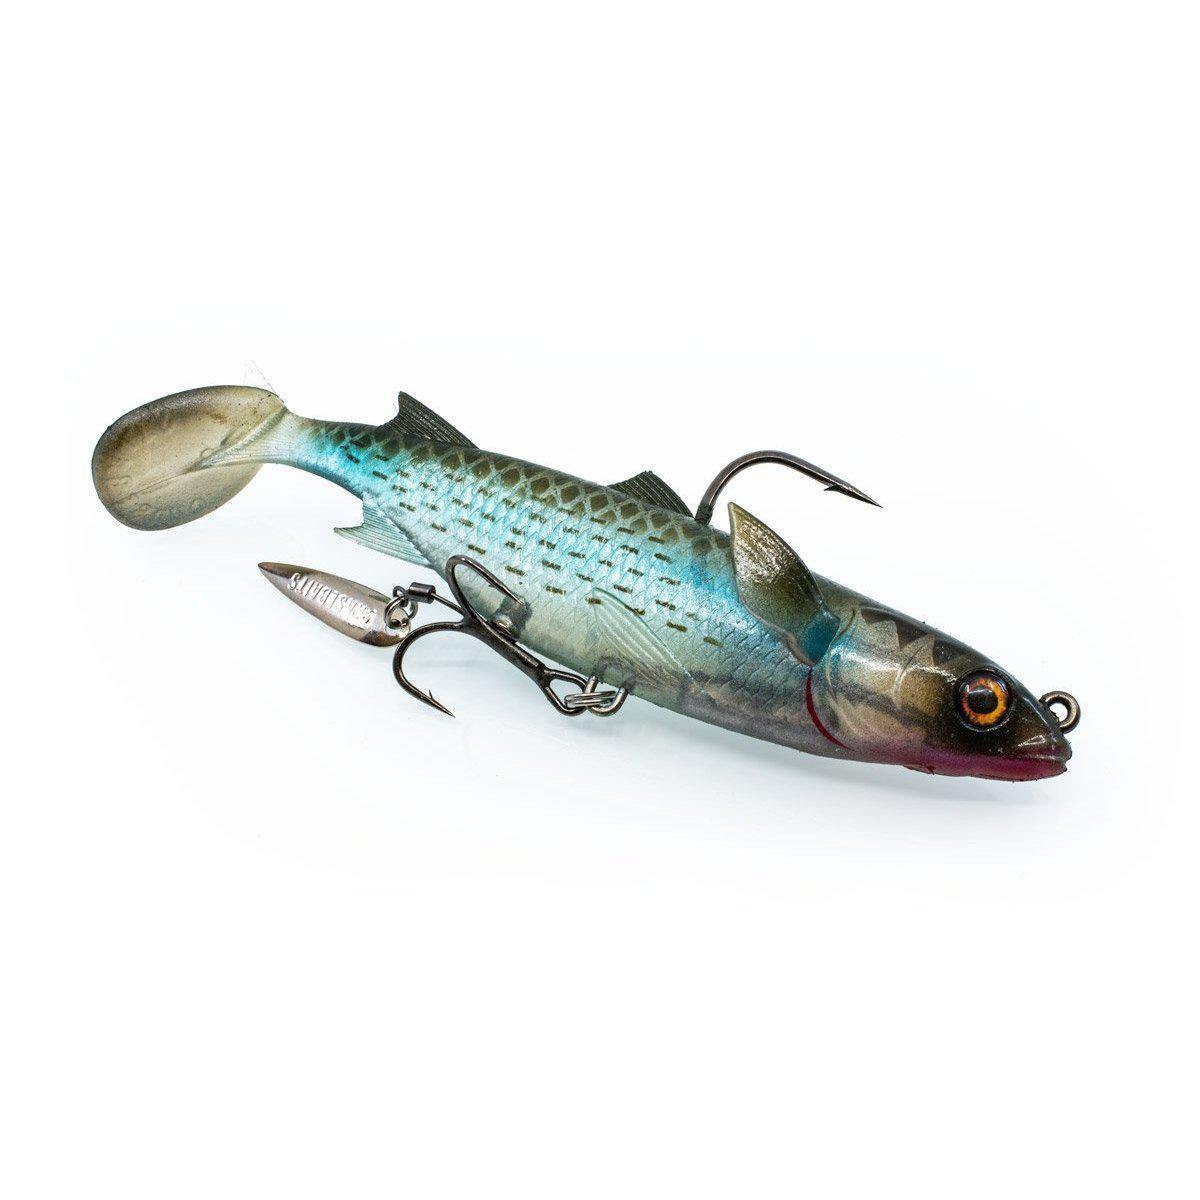 Chasebaits 125mm Poddy Mullet Lure-Addict Tackle